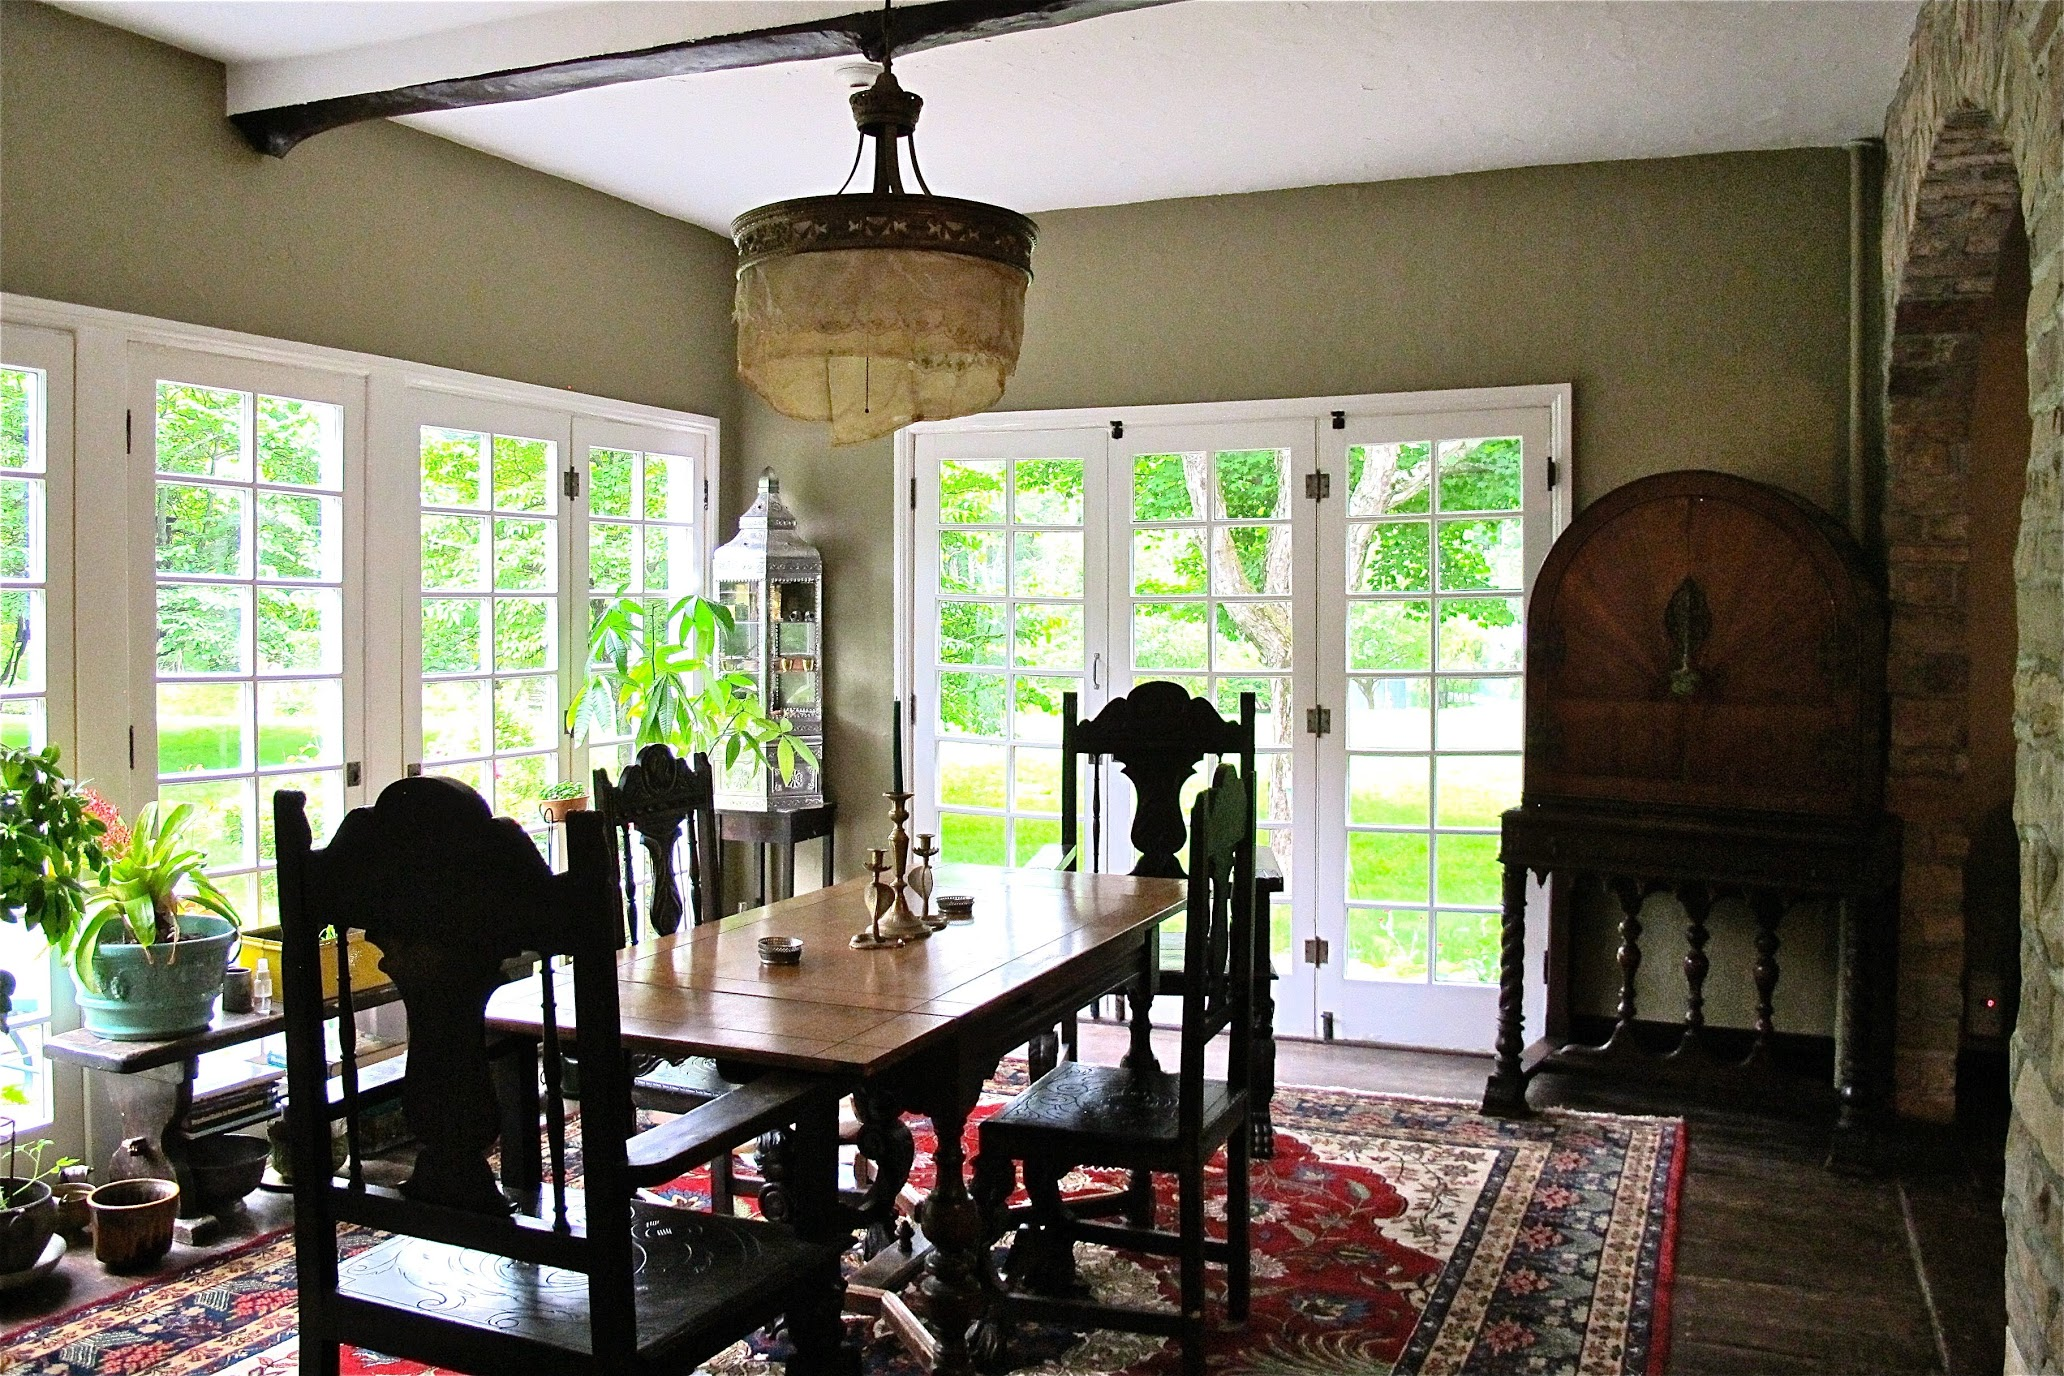 Our interior decorator specializes in antique, rustic, elegant, bohemian, vintage and eclectic decorations. We also provide staging for residential or commercial properties.